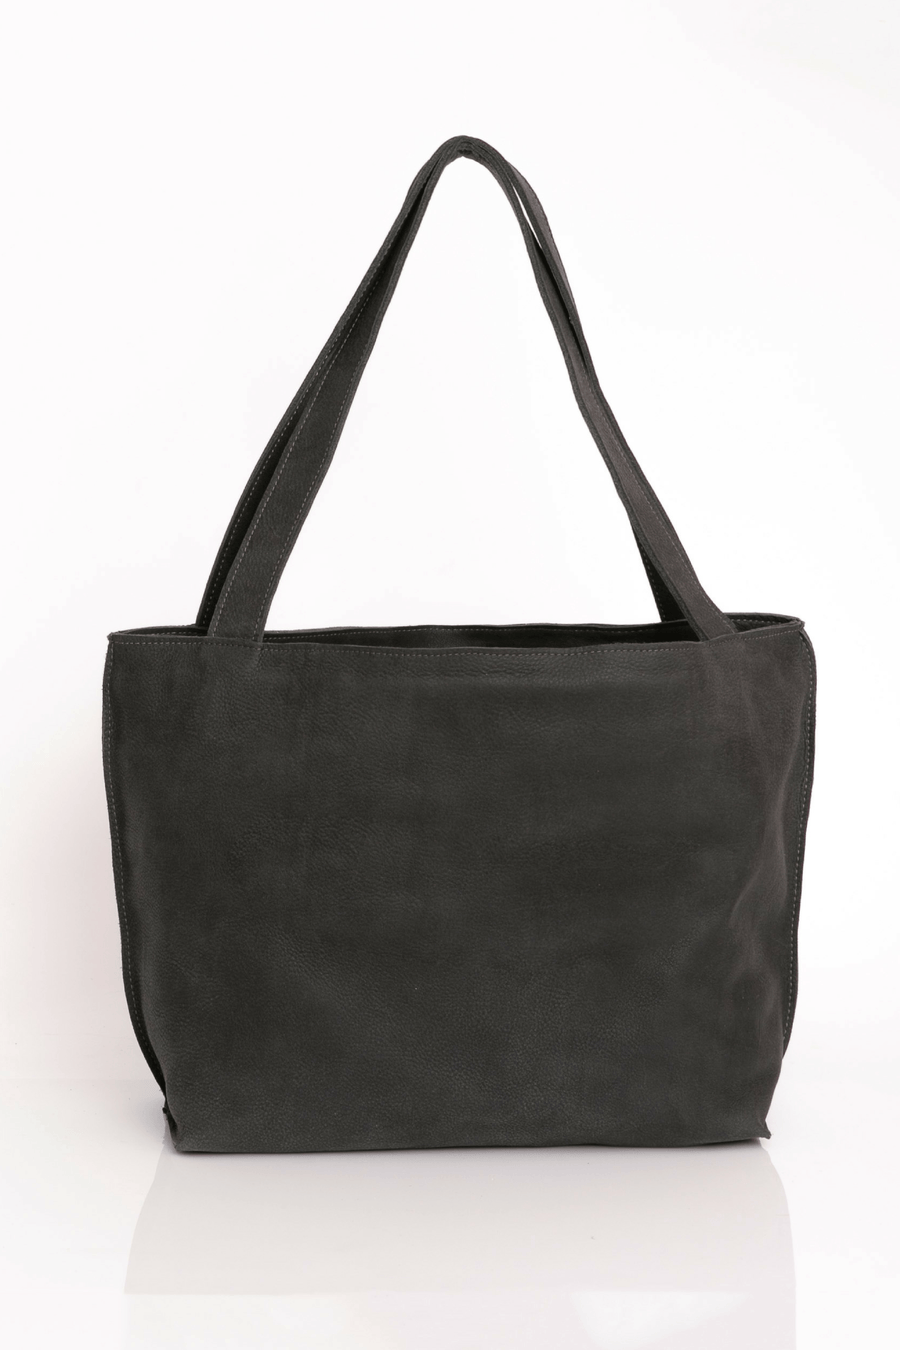 black leather tote, tote bag, handbag, leather bag, shoulder bag, leather tote bag, tote bag with zipper, handmade bag, woman leather bag, soft leather , italian leather bag